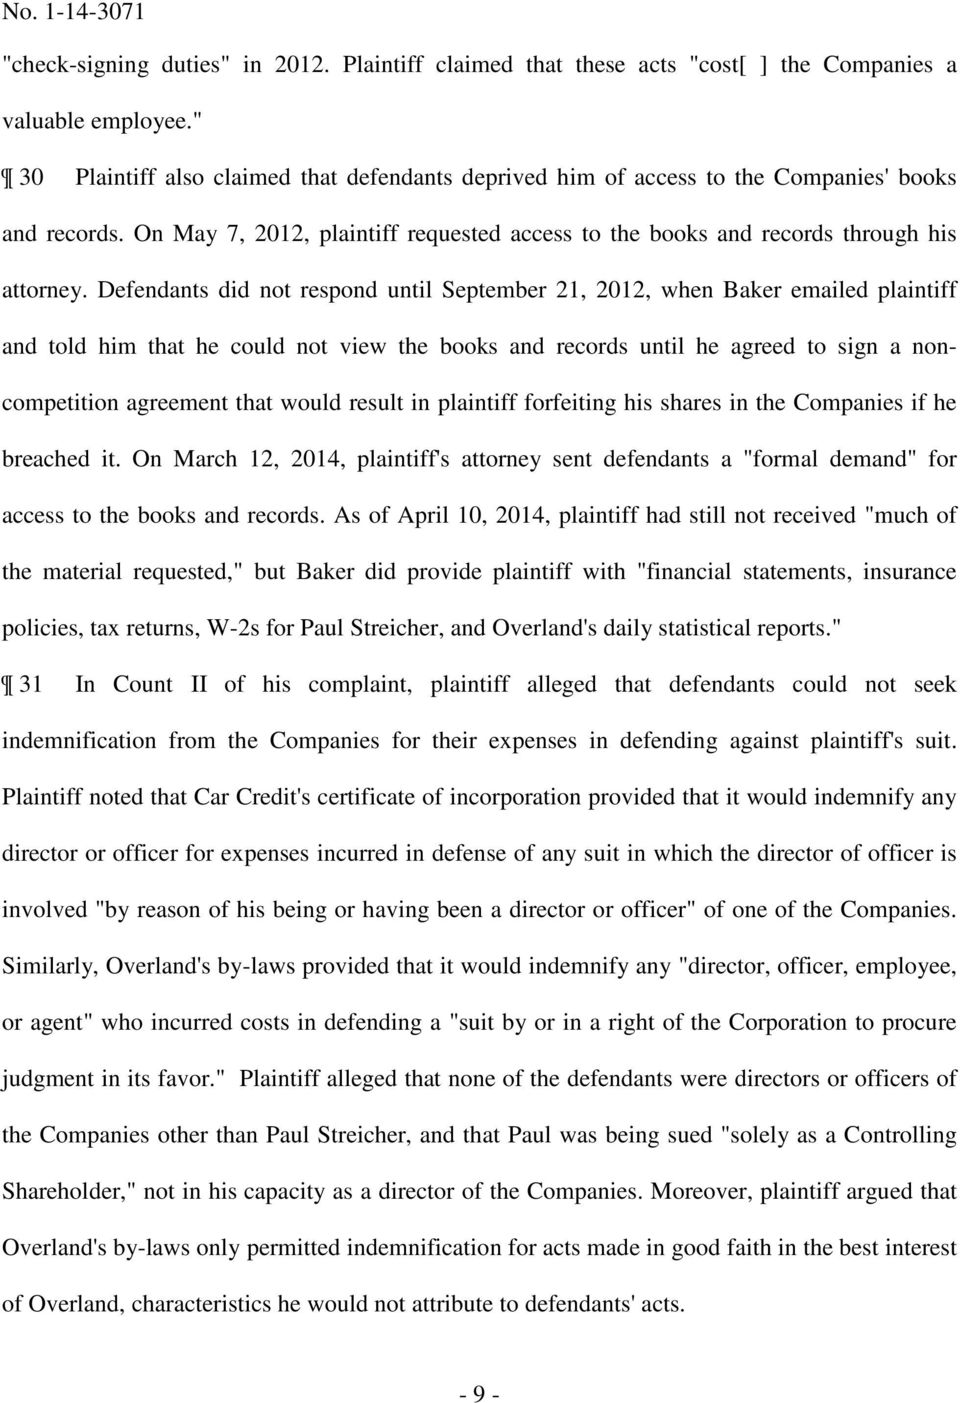 Defendants did not respond until September 21, 2012, when Baker emailed plaintiff and told him that he could not view the books and records until he agreed to sign a noncompetition agreement that